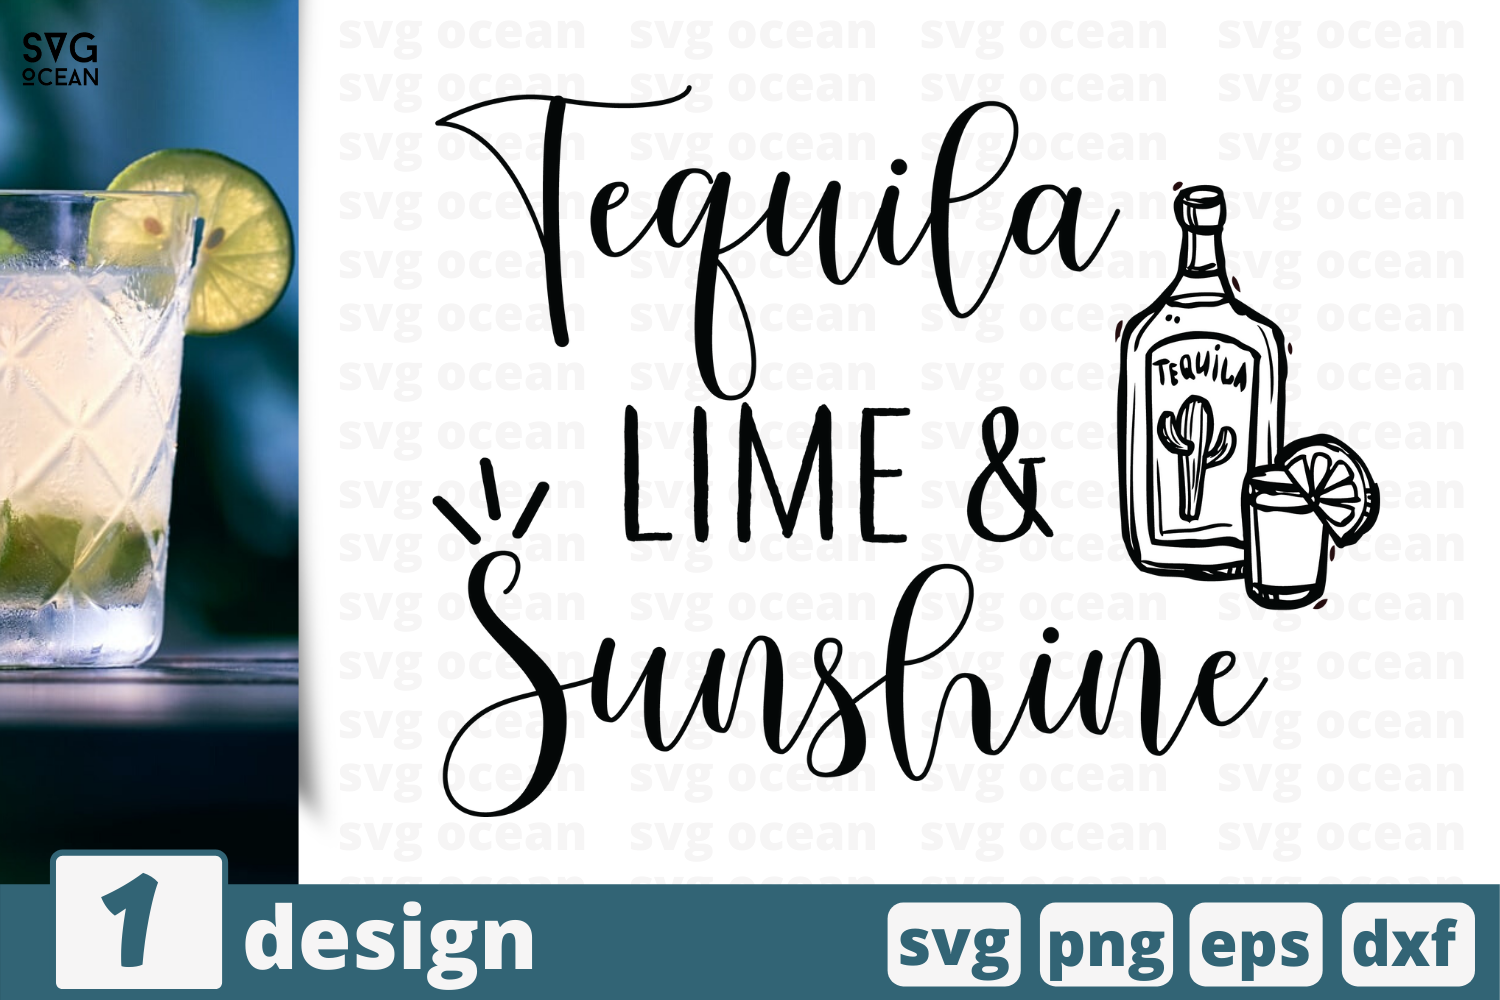 Download Free Tequila Lime Sunshine Graphic By Svgocean Creative Fabrica for Cricut Explore, Silhouette and other cutting machines.